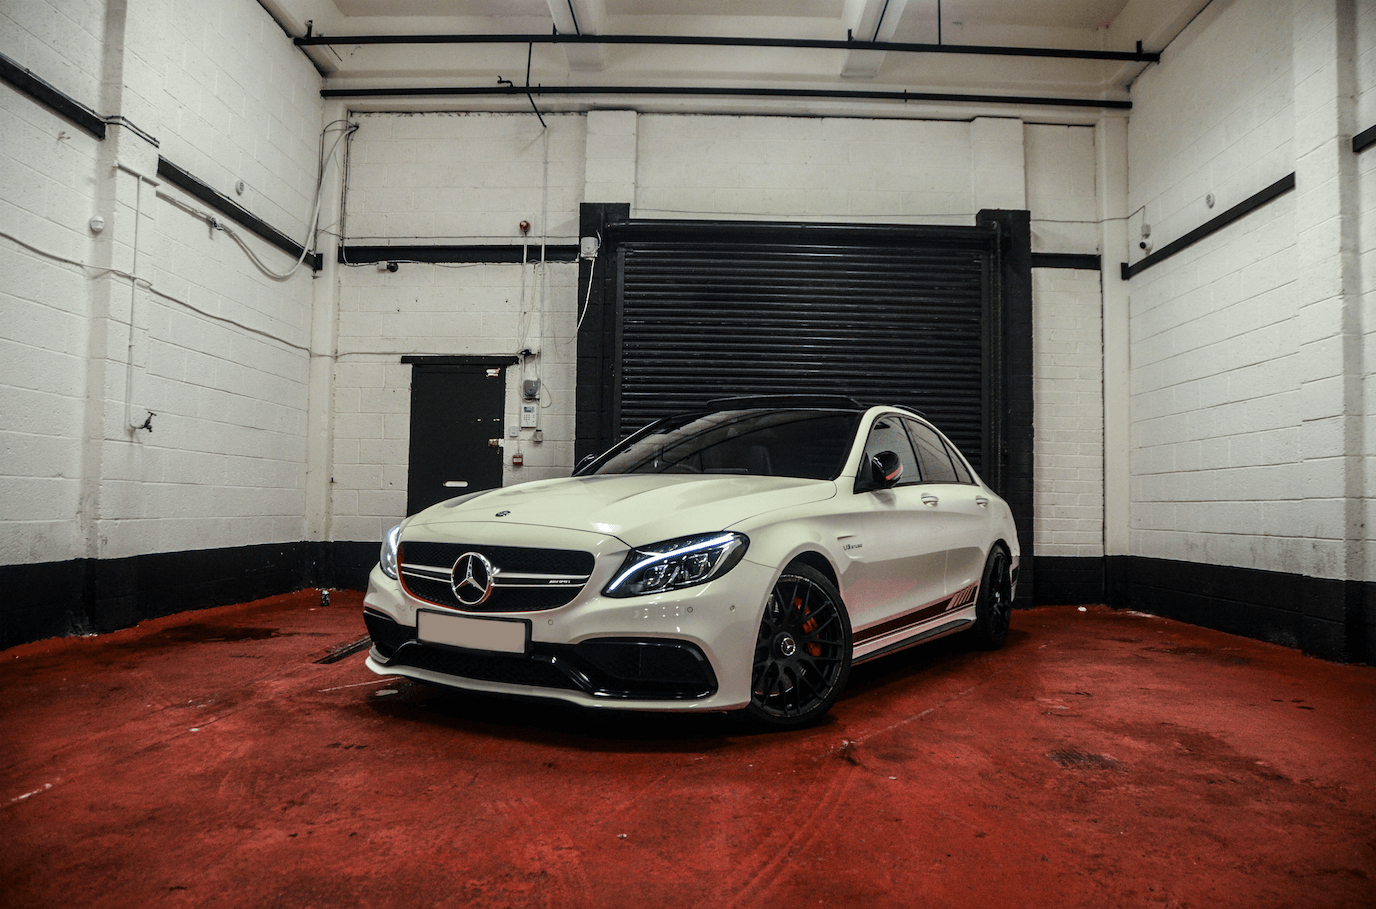 Mercedes-Benz C63 AMG Hire